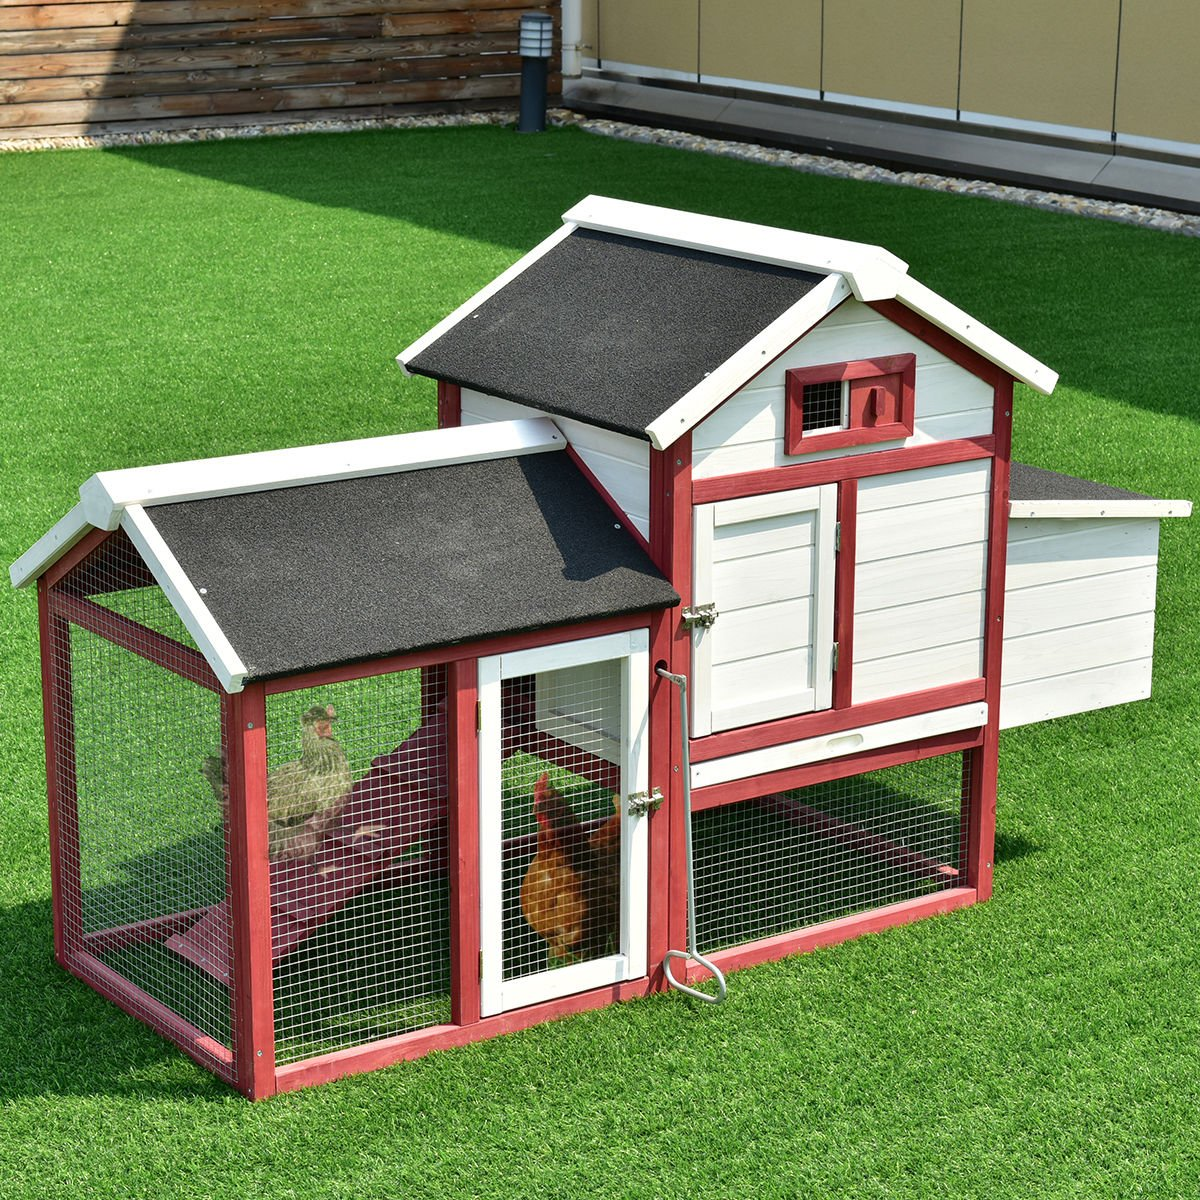 product high living chicken hutches combination with batten hutch and coops siding outdoor x board green area coop run acres